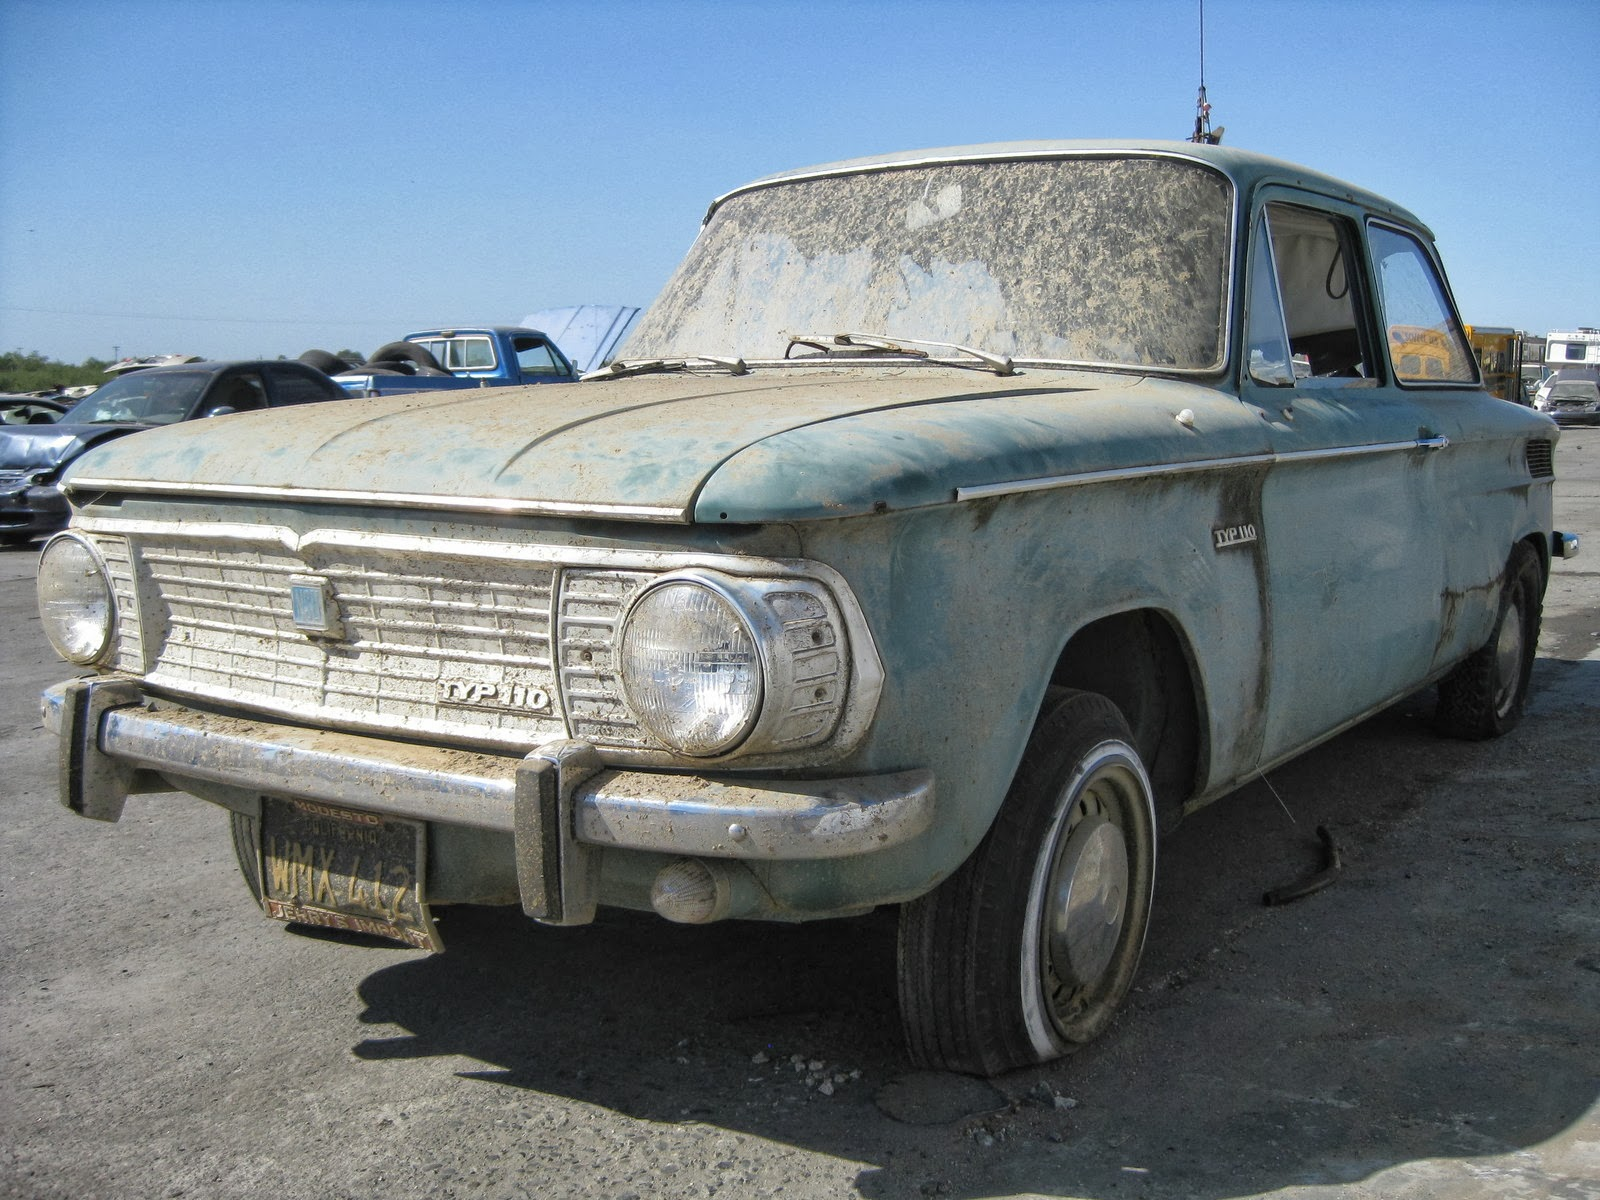 0.5k: Lost & Found: 1967 NSU Typ 110 Junkyard Find